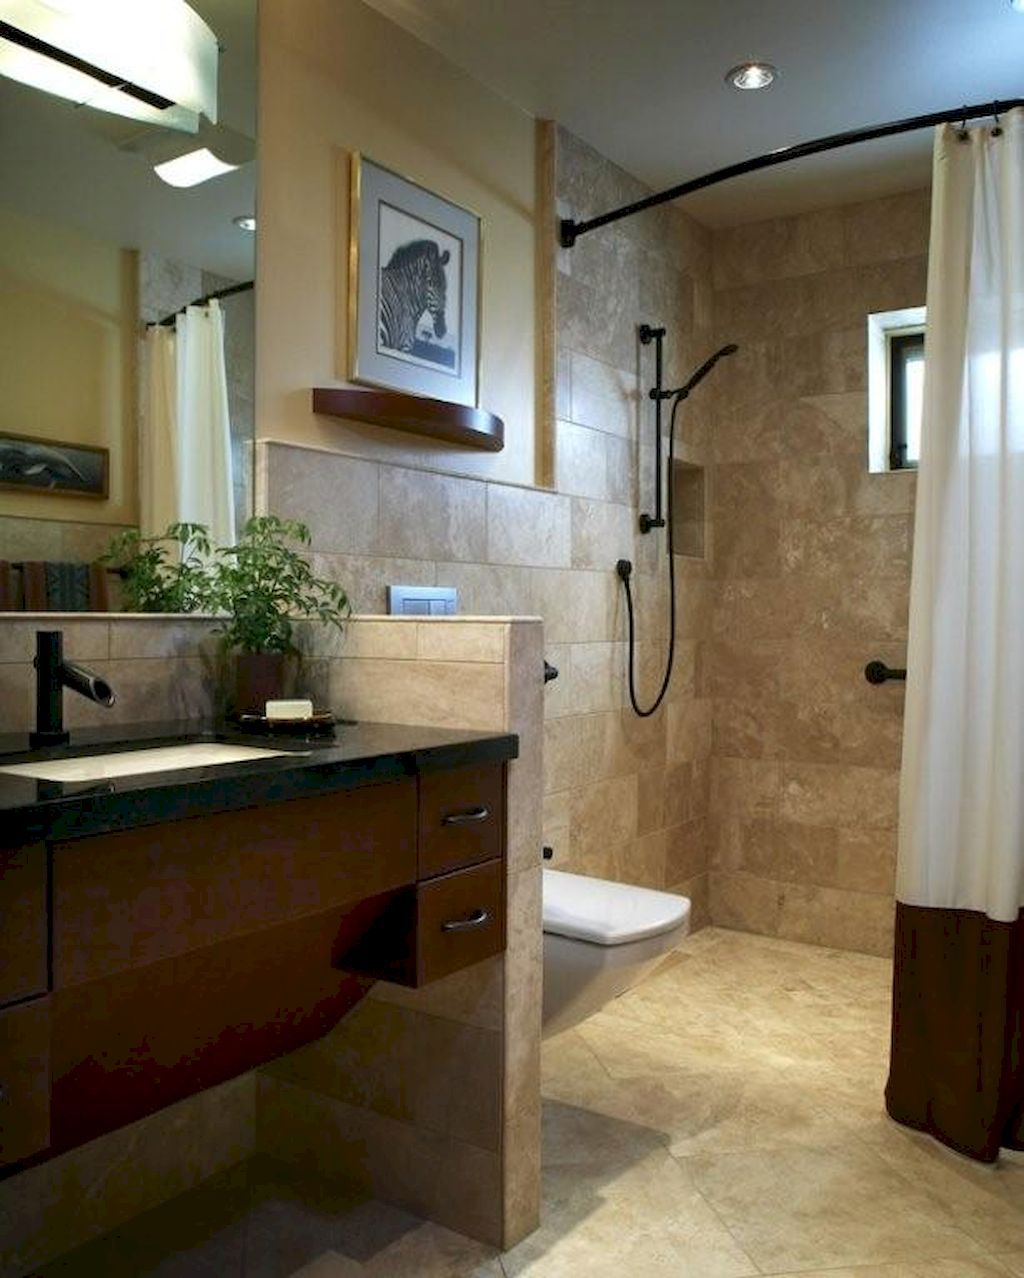 50 Best Small Bathroom Remodel Ideas On A Budget  Small Bathroom Fair Bathroom Renovation Ideas For Tight Budget Design Decoration